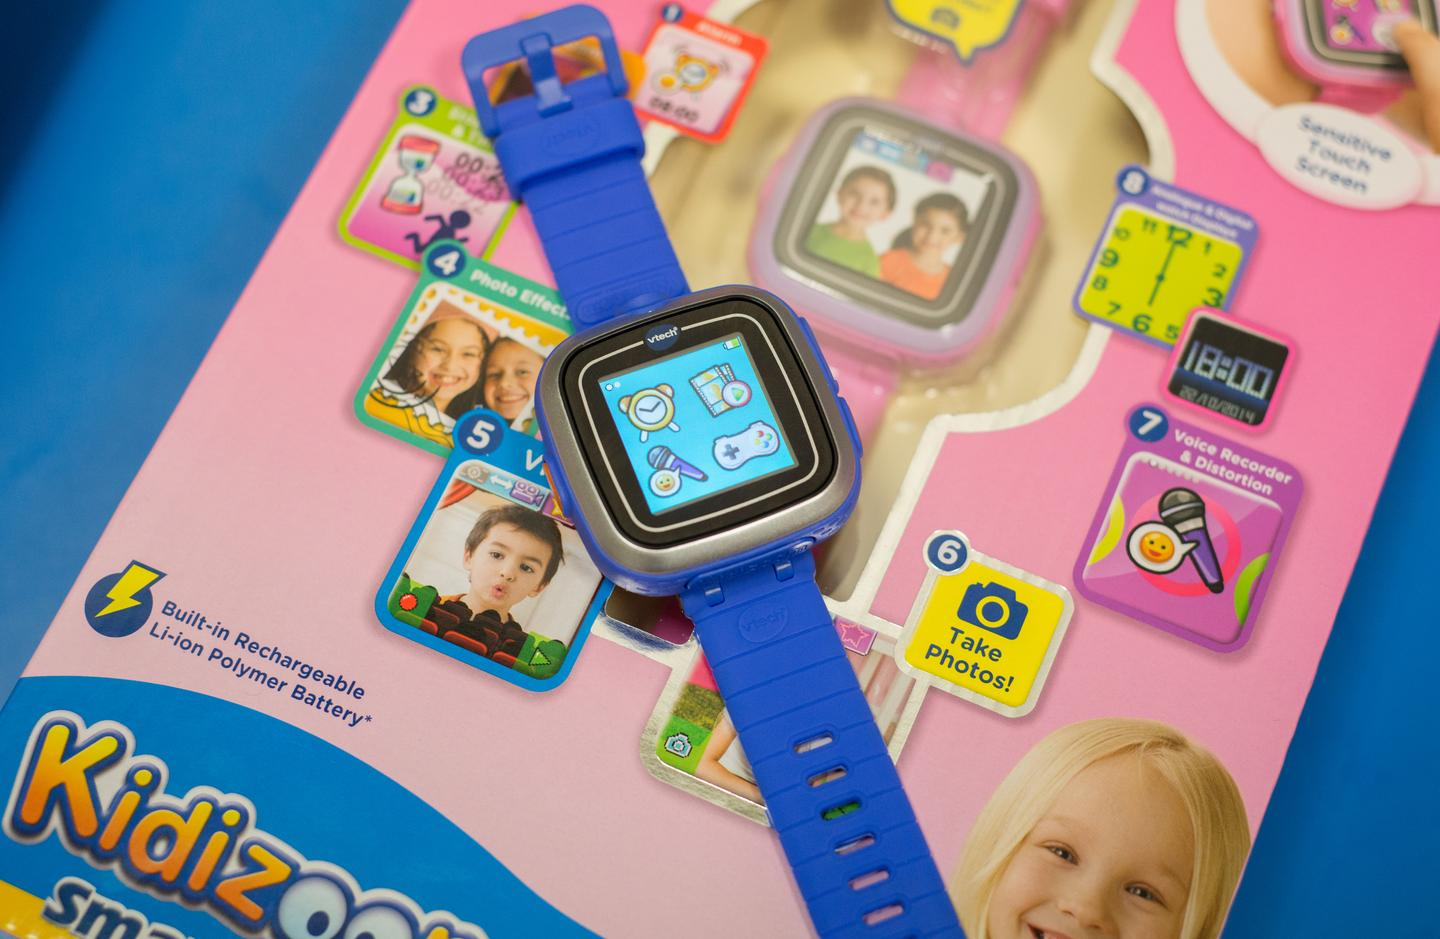 The VTech Kiddizoom Smart Watch is designed for 5 to 12-year-olds (Photo: Simon Crisp/Gizmag.com)